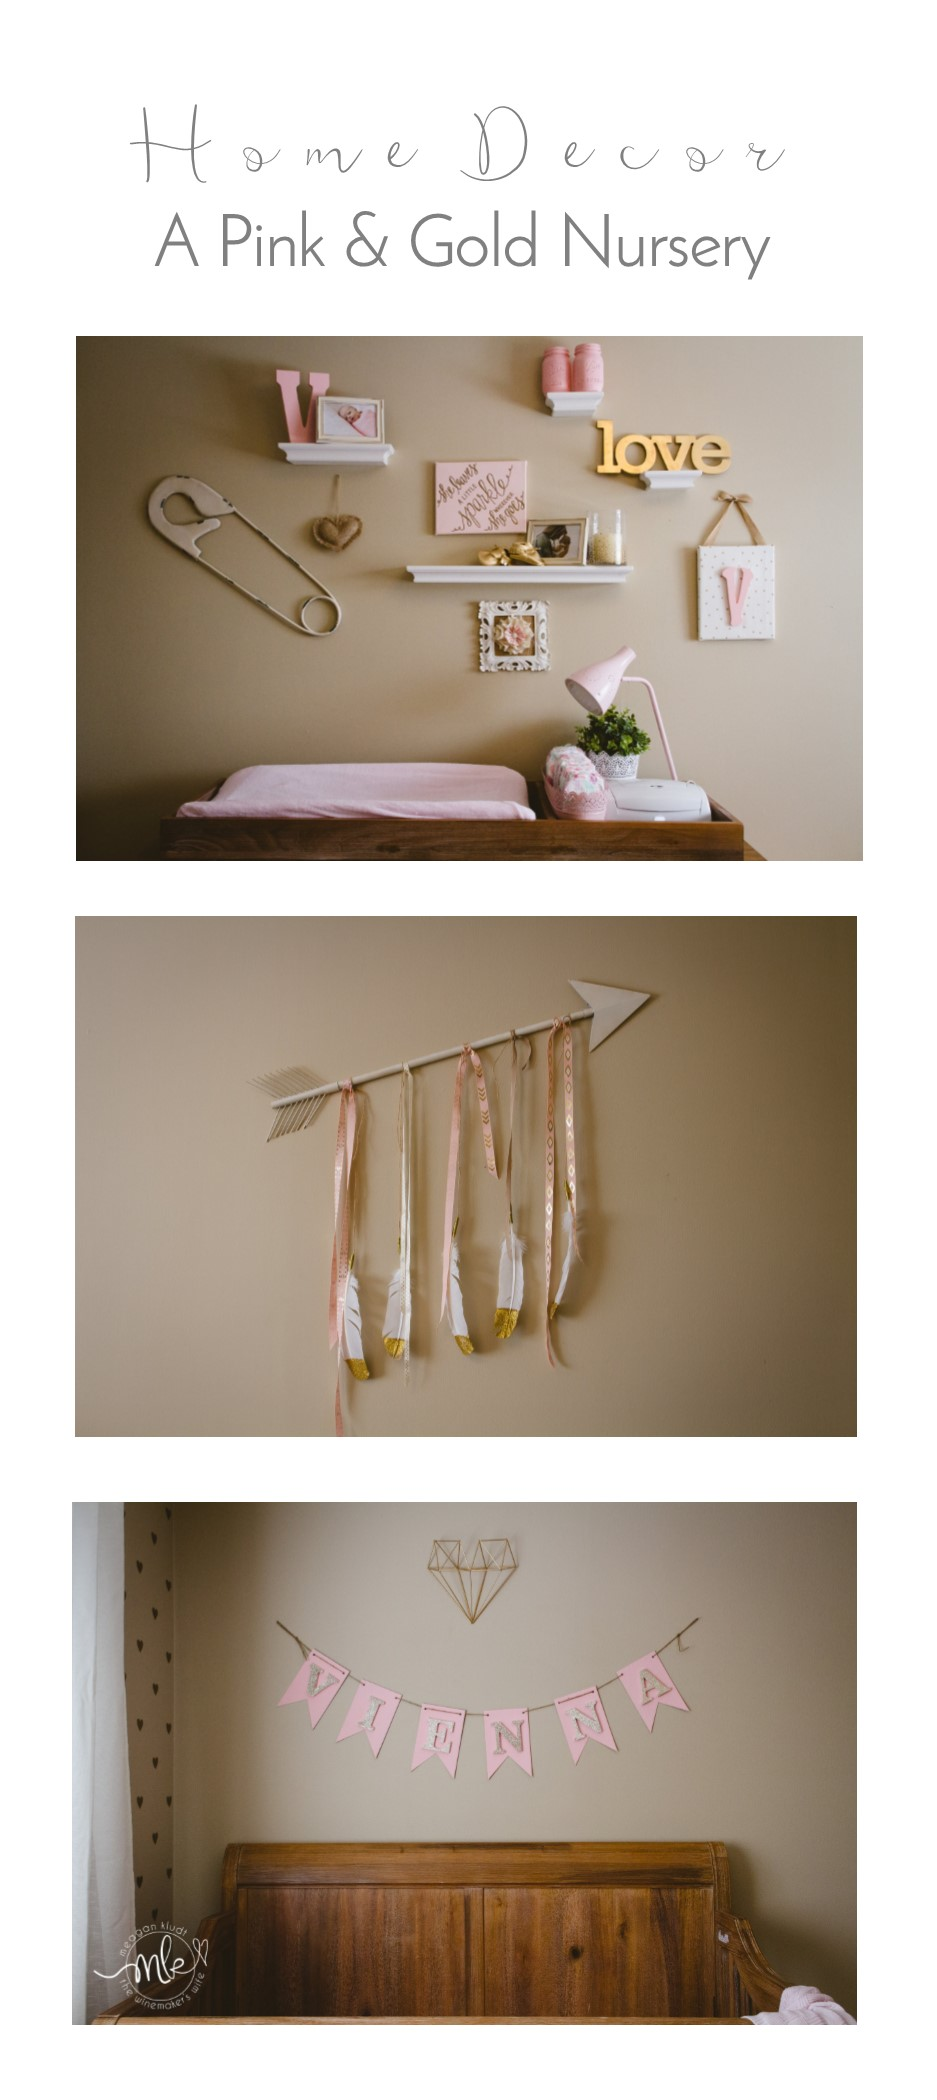 Home Décor   A Pink & Gold Nursery   Meagan Kludt   The Winemakers Wife   Wife. Mother. Lifestyle Blogger.